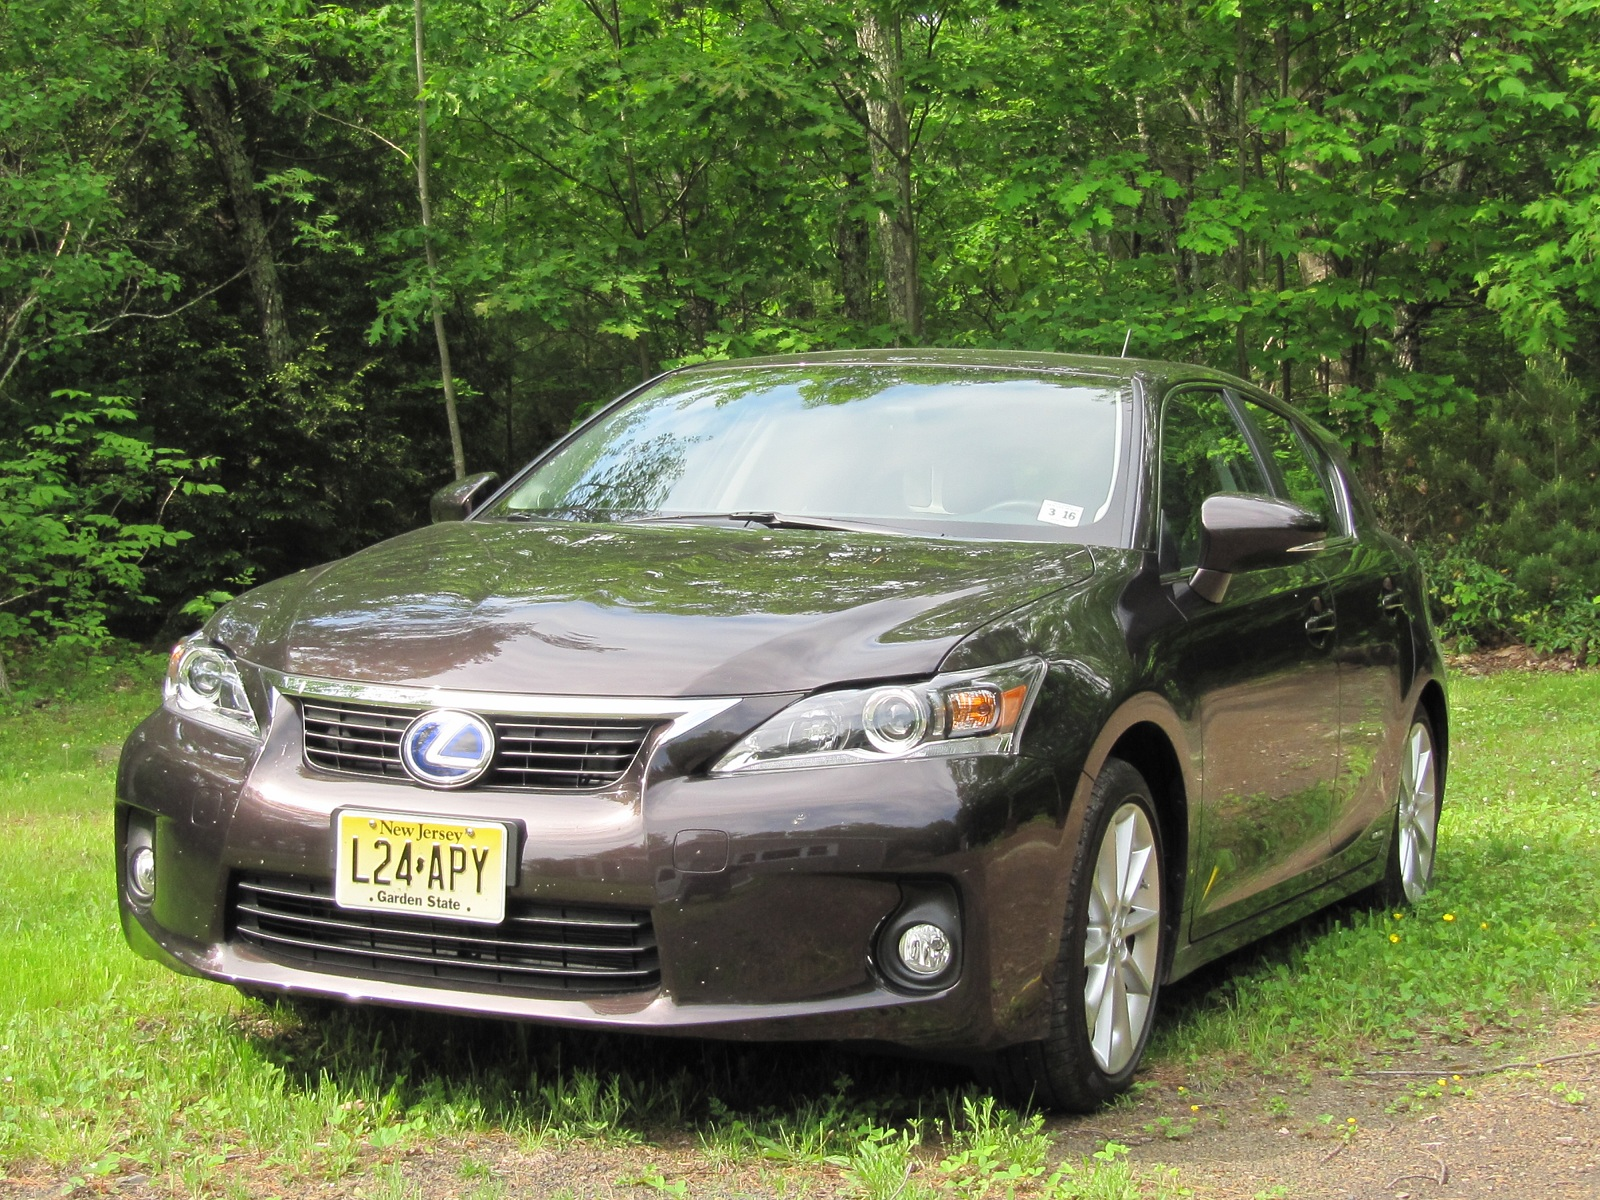 2012 Lexus CT 200h Hybrid Hatch Now Louder With More Noise